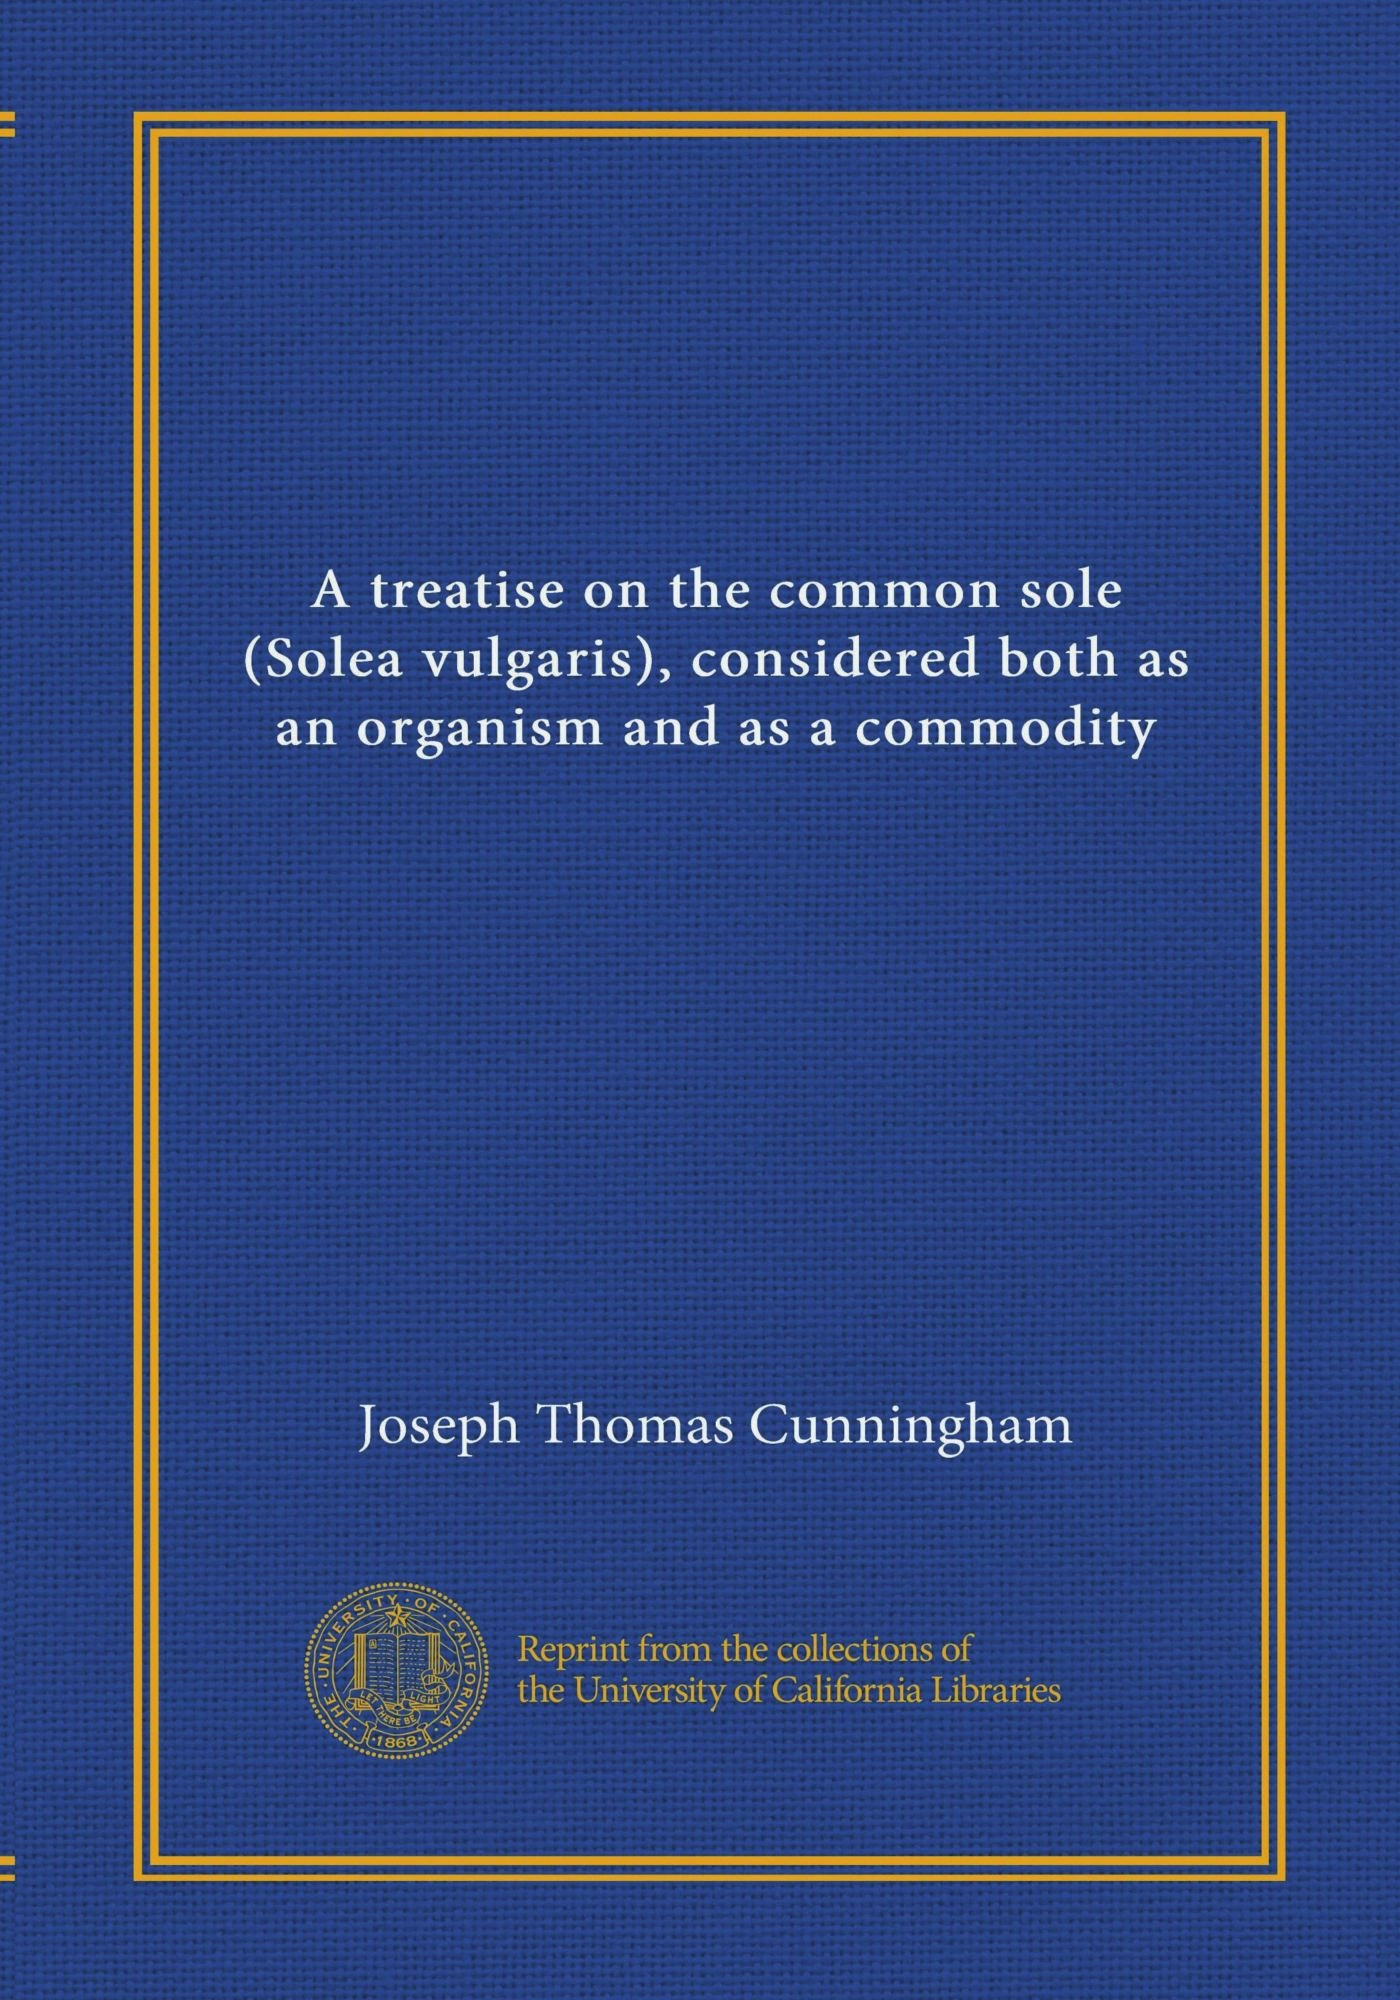 A treatise on the common sole (Solea vulgaris), considered both as an organism and as a commodity pdf